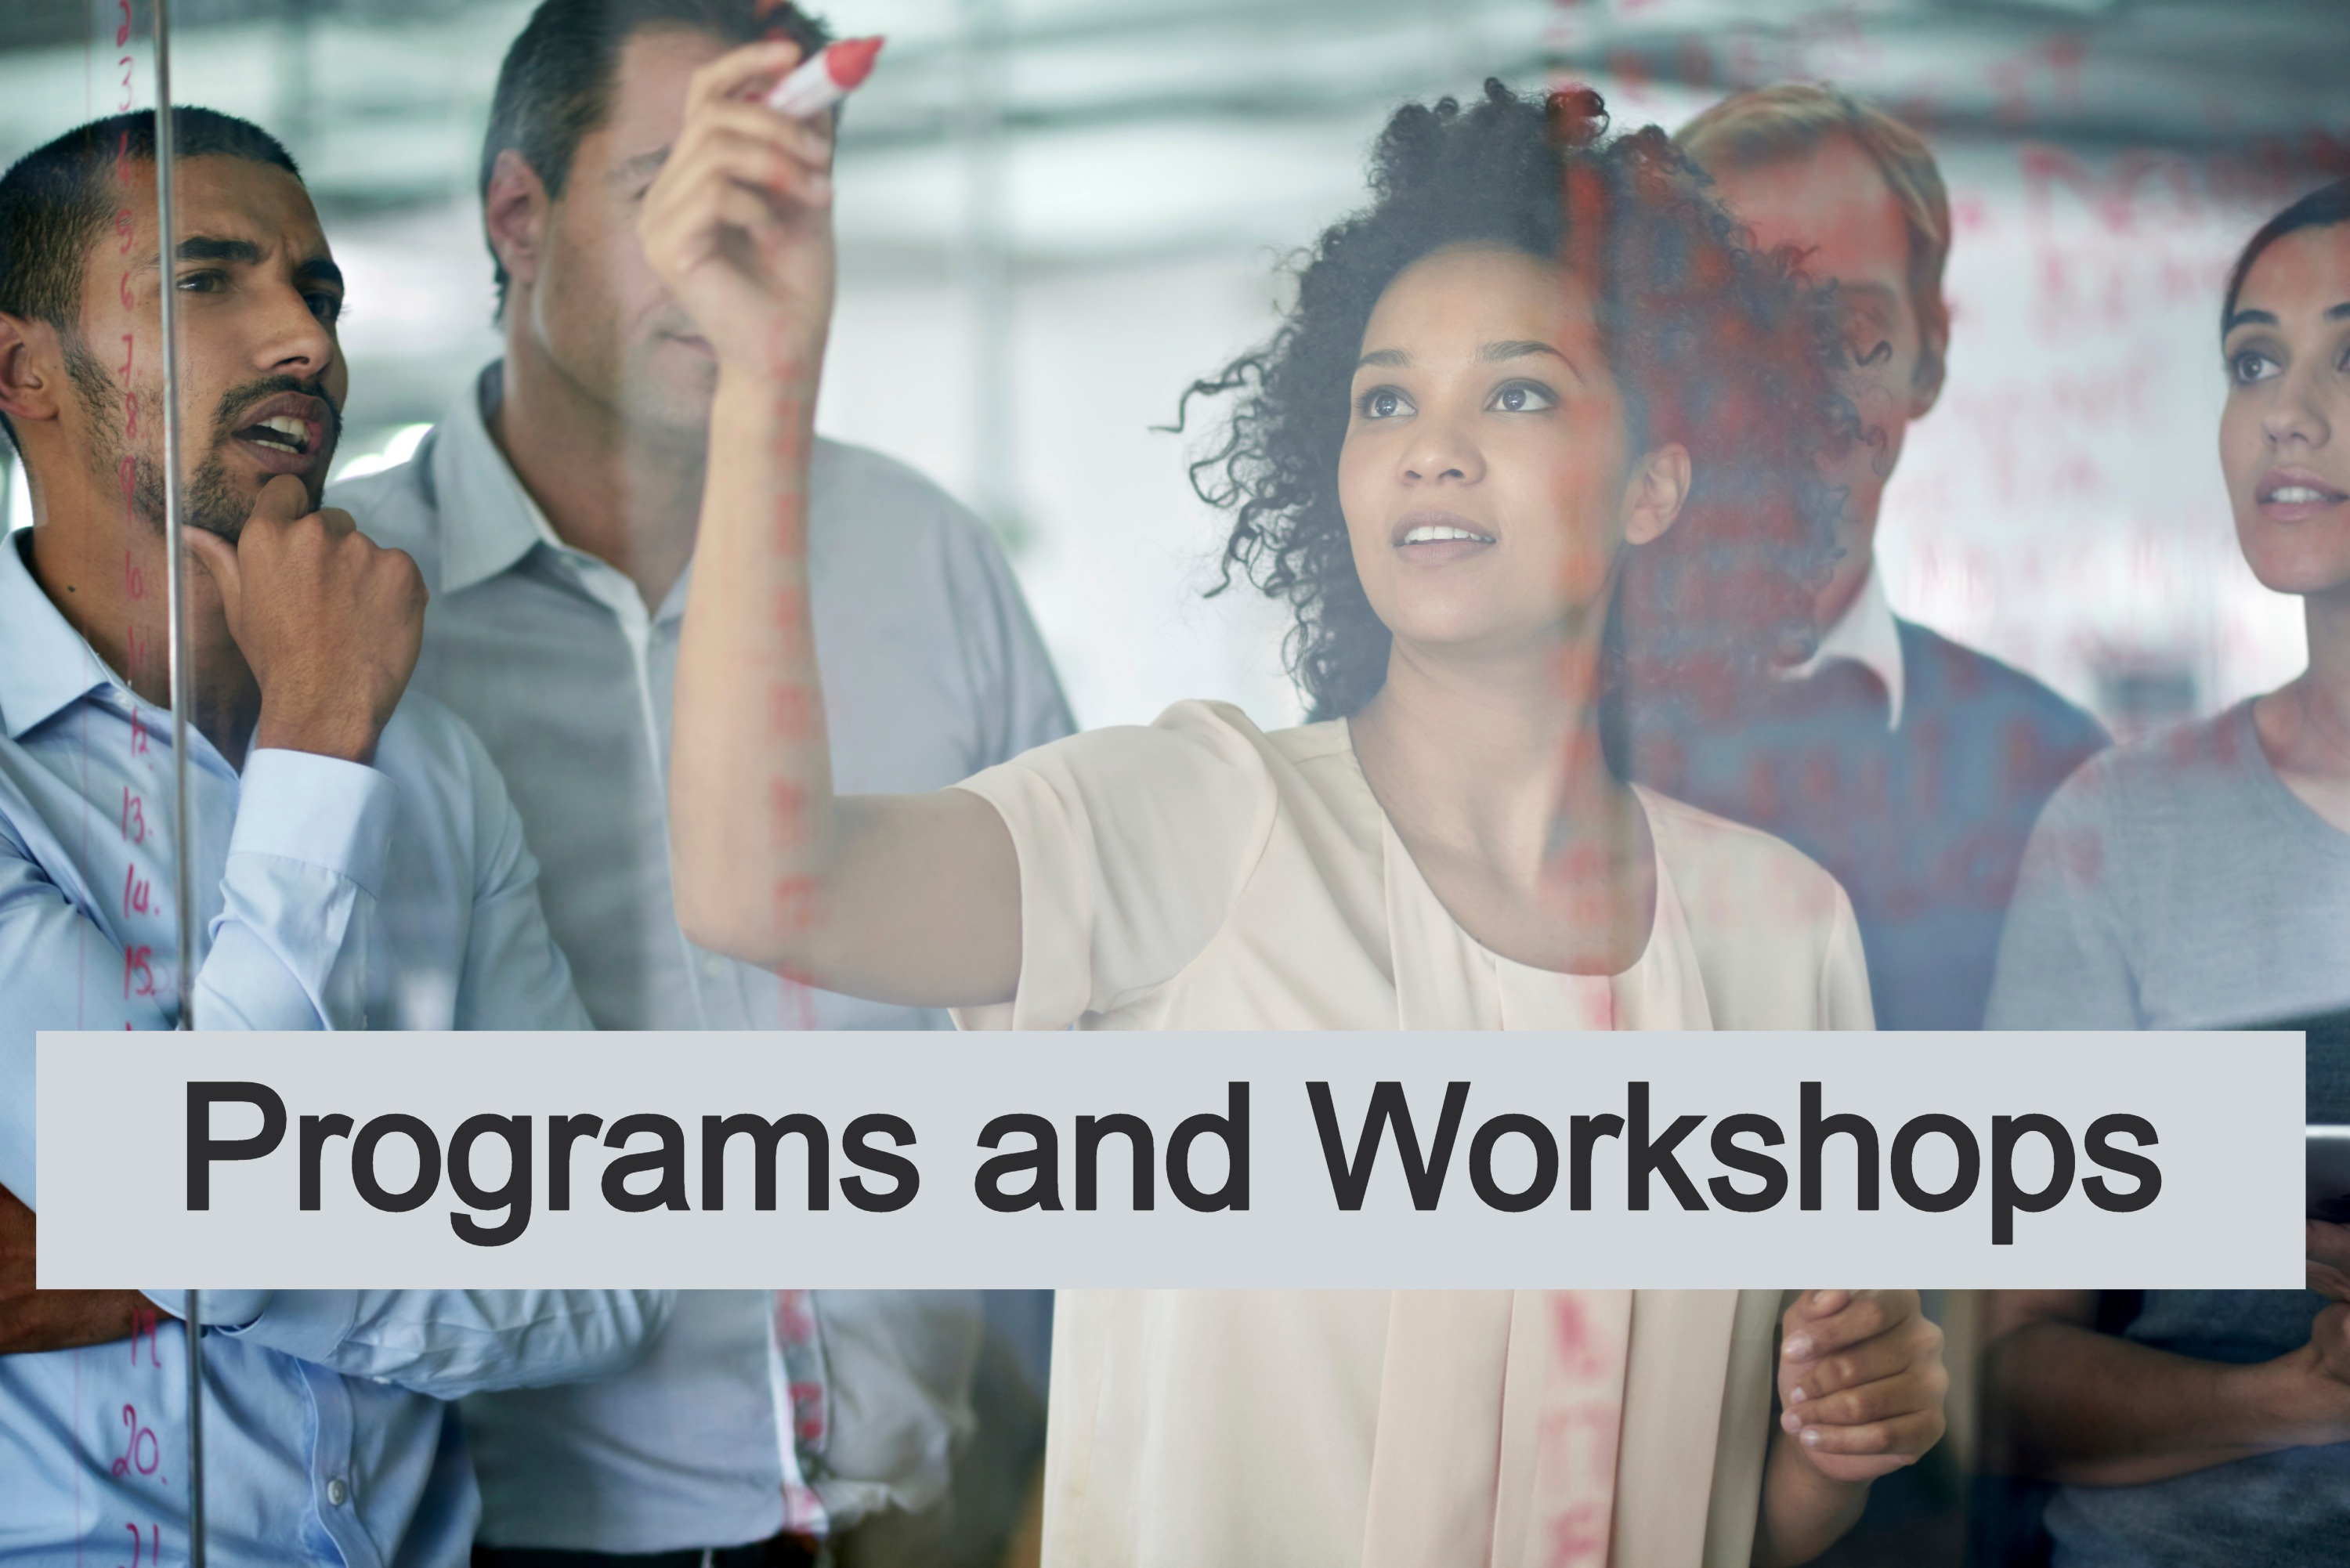 Programs and Workshops